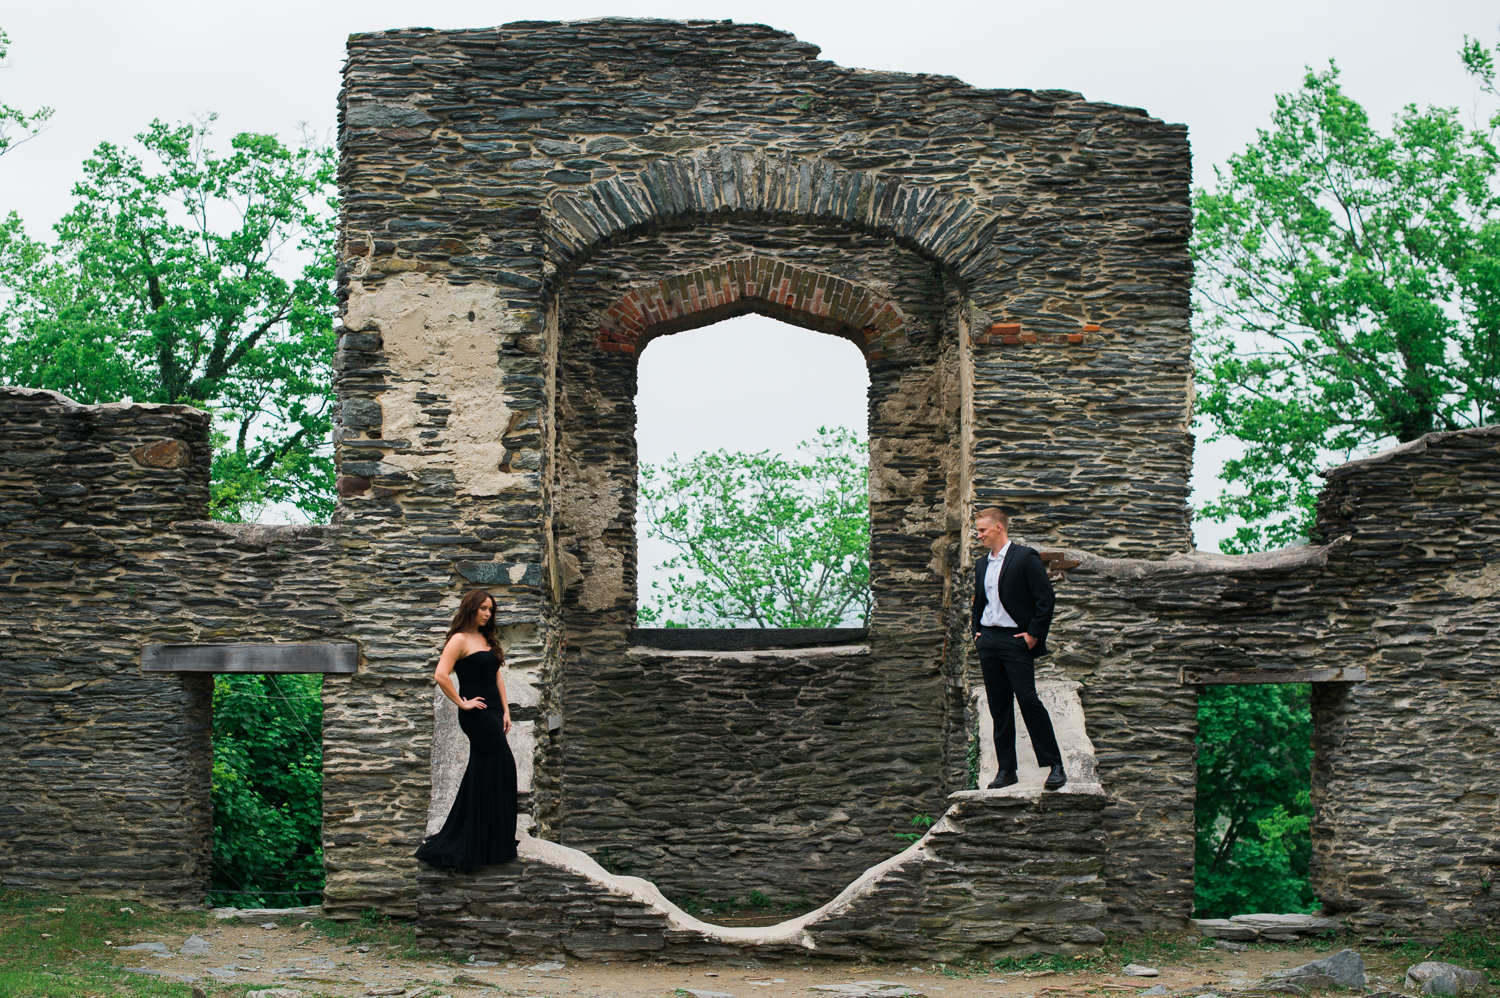 callie-and-chris-harpers-ferry-church-ruins-engagement-8.jpg